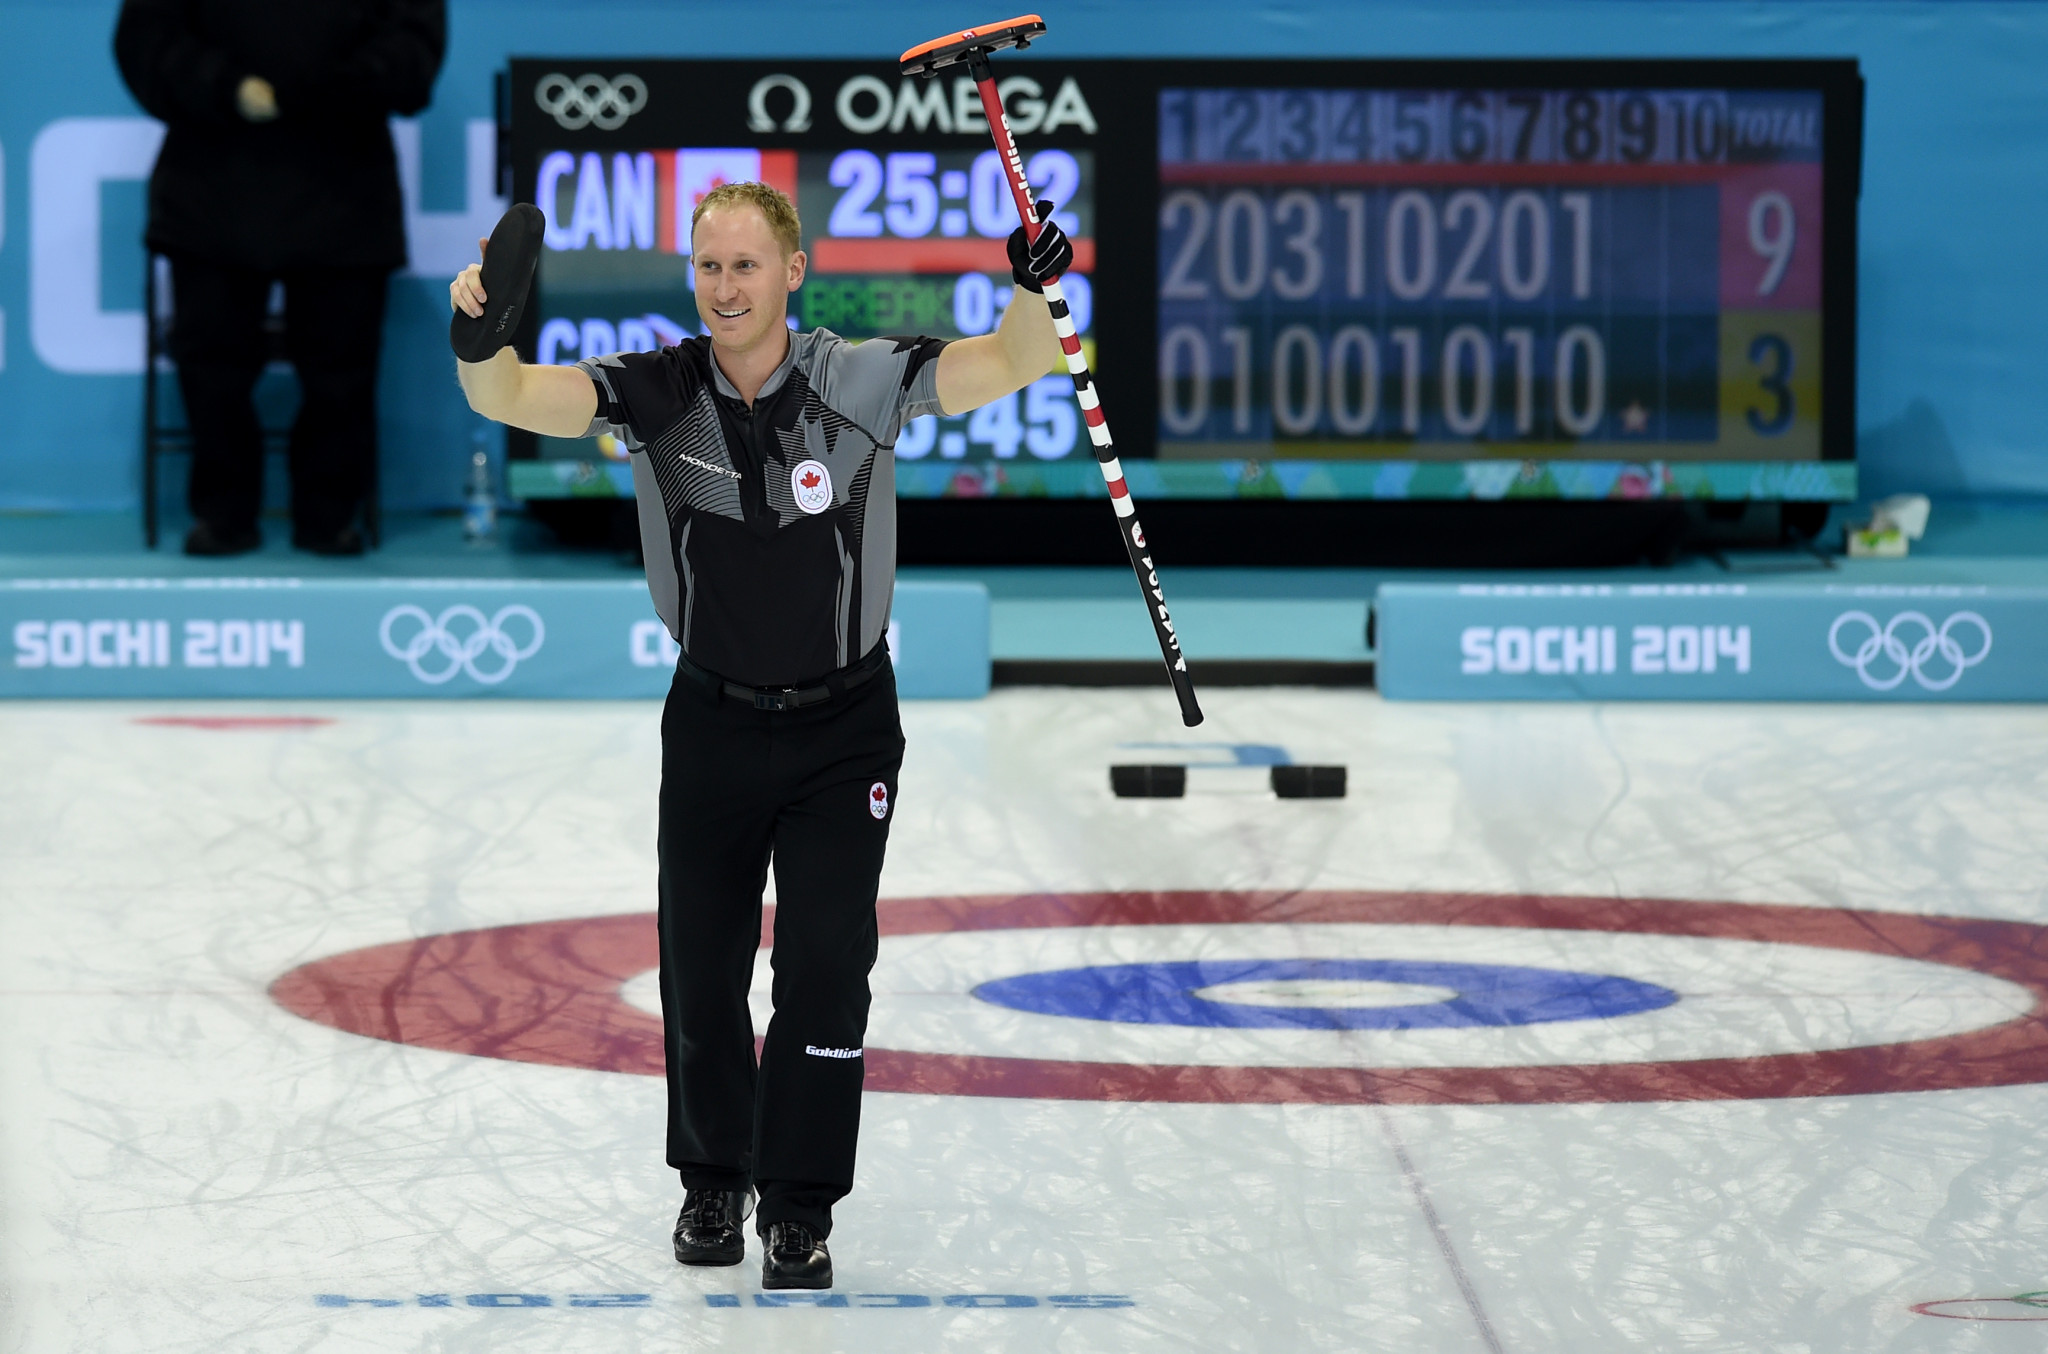 Olympic curling gold medallist Jacobs continues good form at Canadian Open